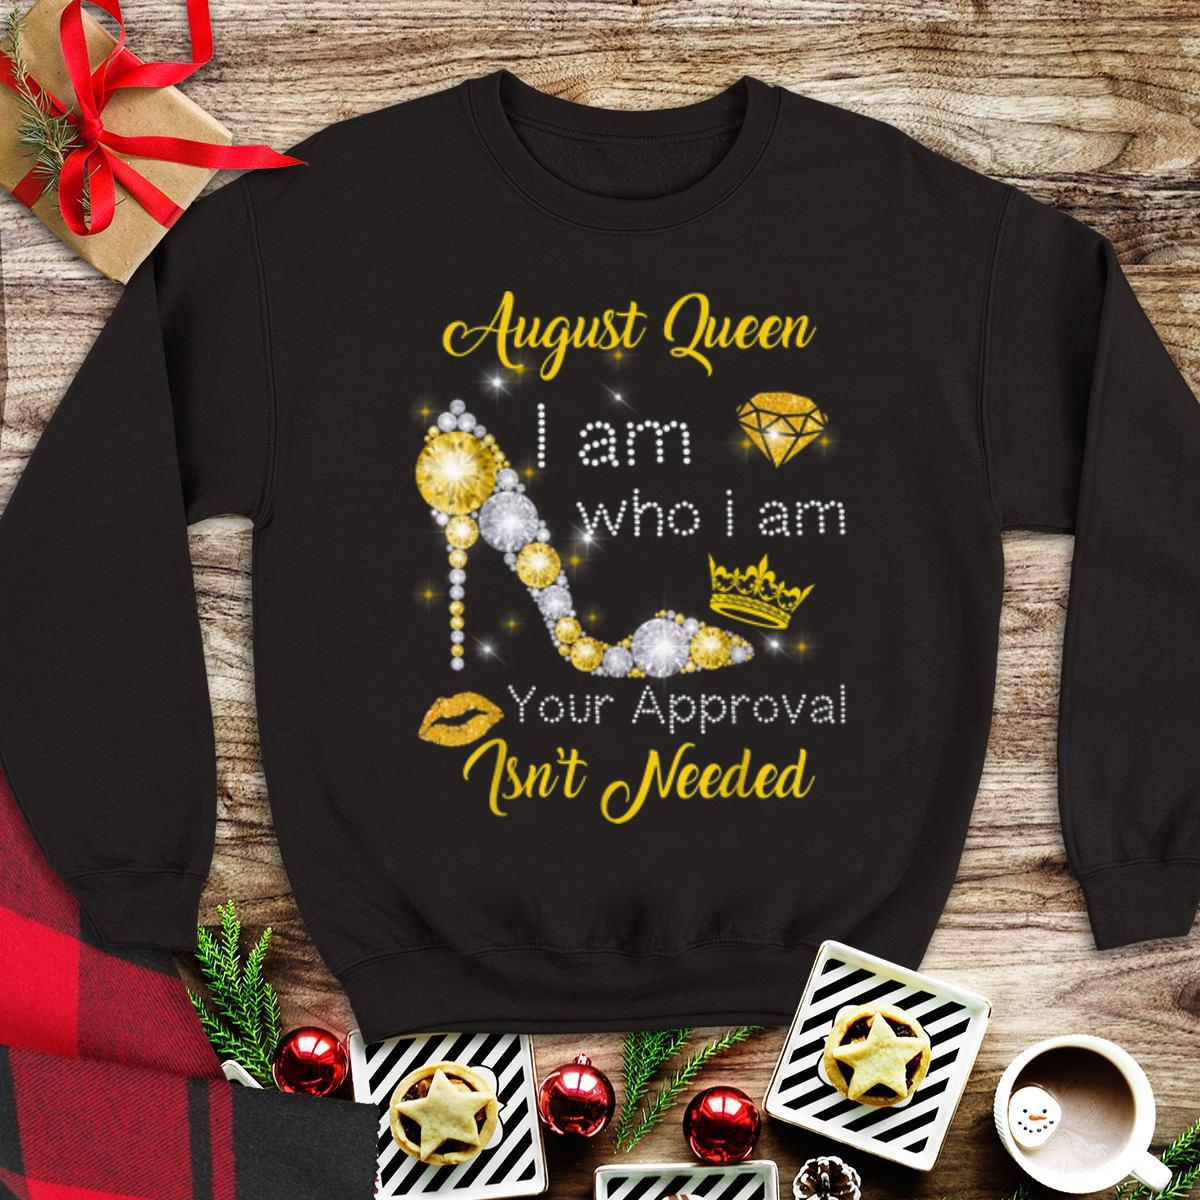 August Girl I Am Who I Am Your Approval Isn t Needed Diamond tank top 1 - August Girl I Am Who I Am Your Approval Isn't Needed Diamond tank top